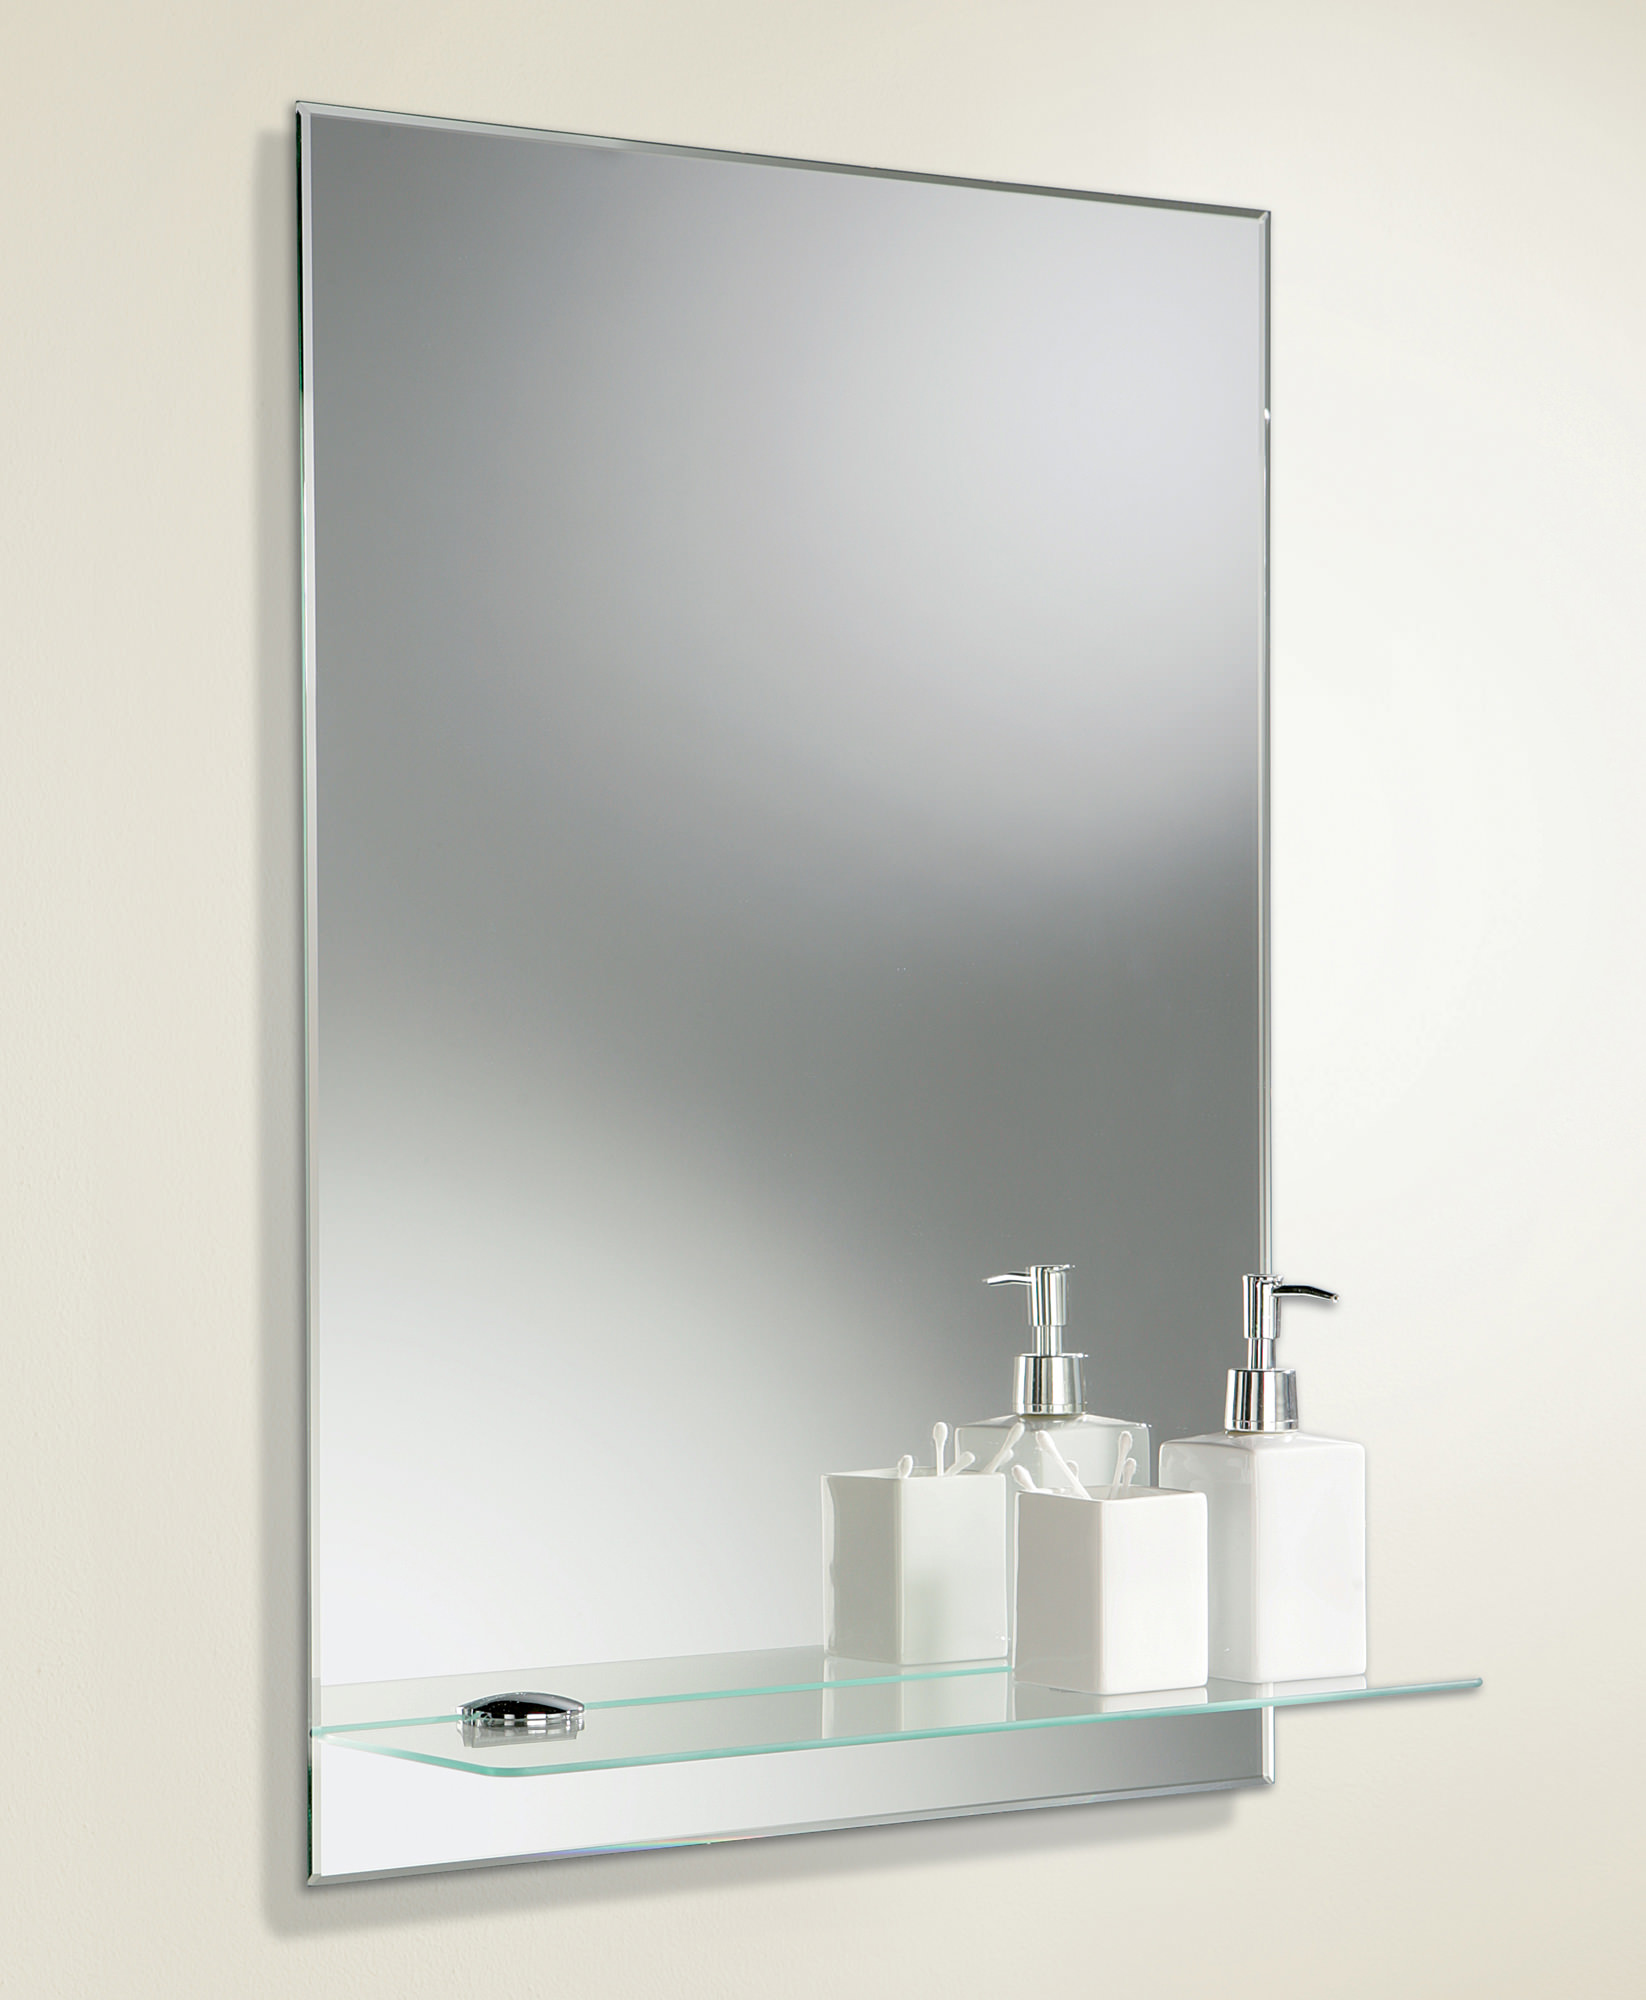 Hib Delby Rectangular Bevelled Edge Mirror With Glass Shelf 72026000